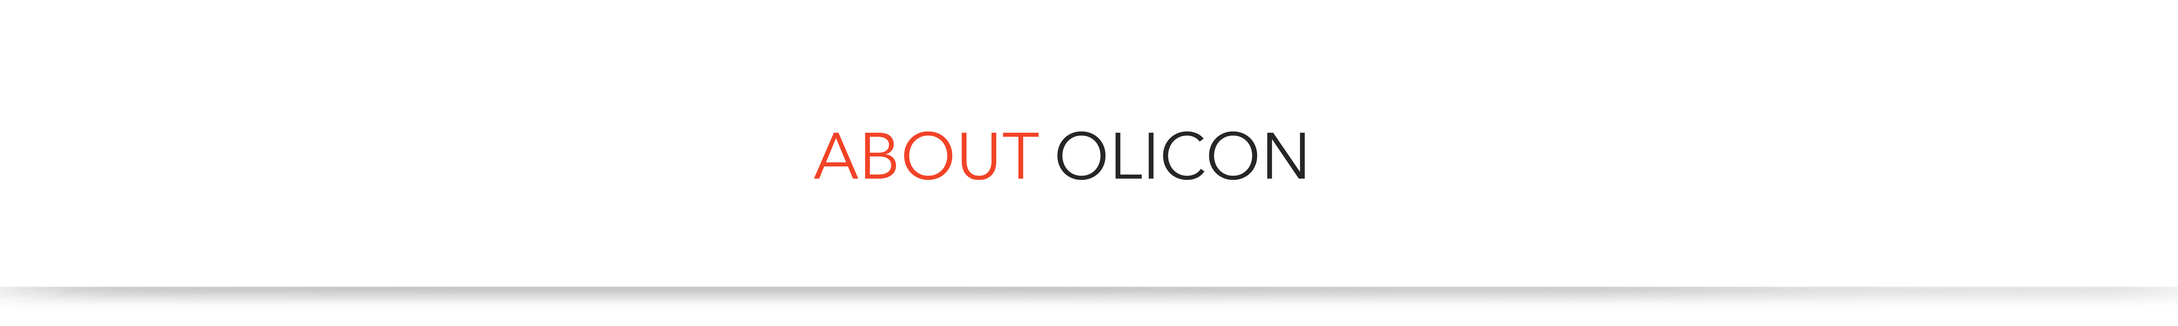 olicon-13.png